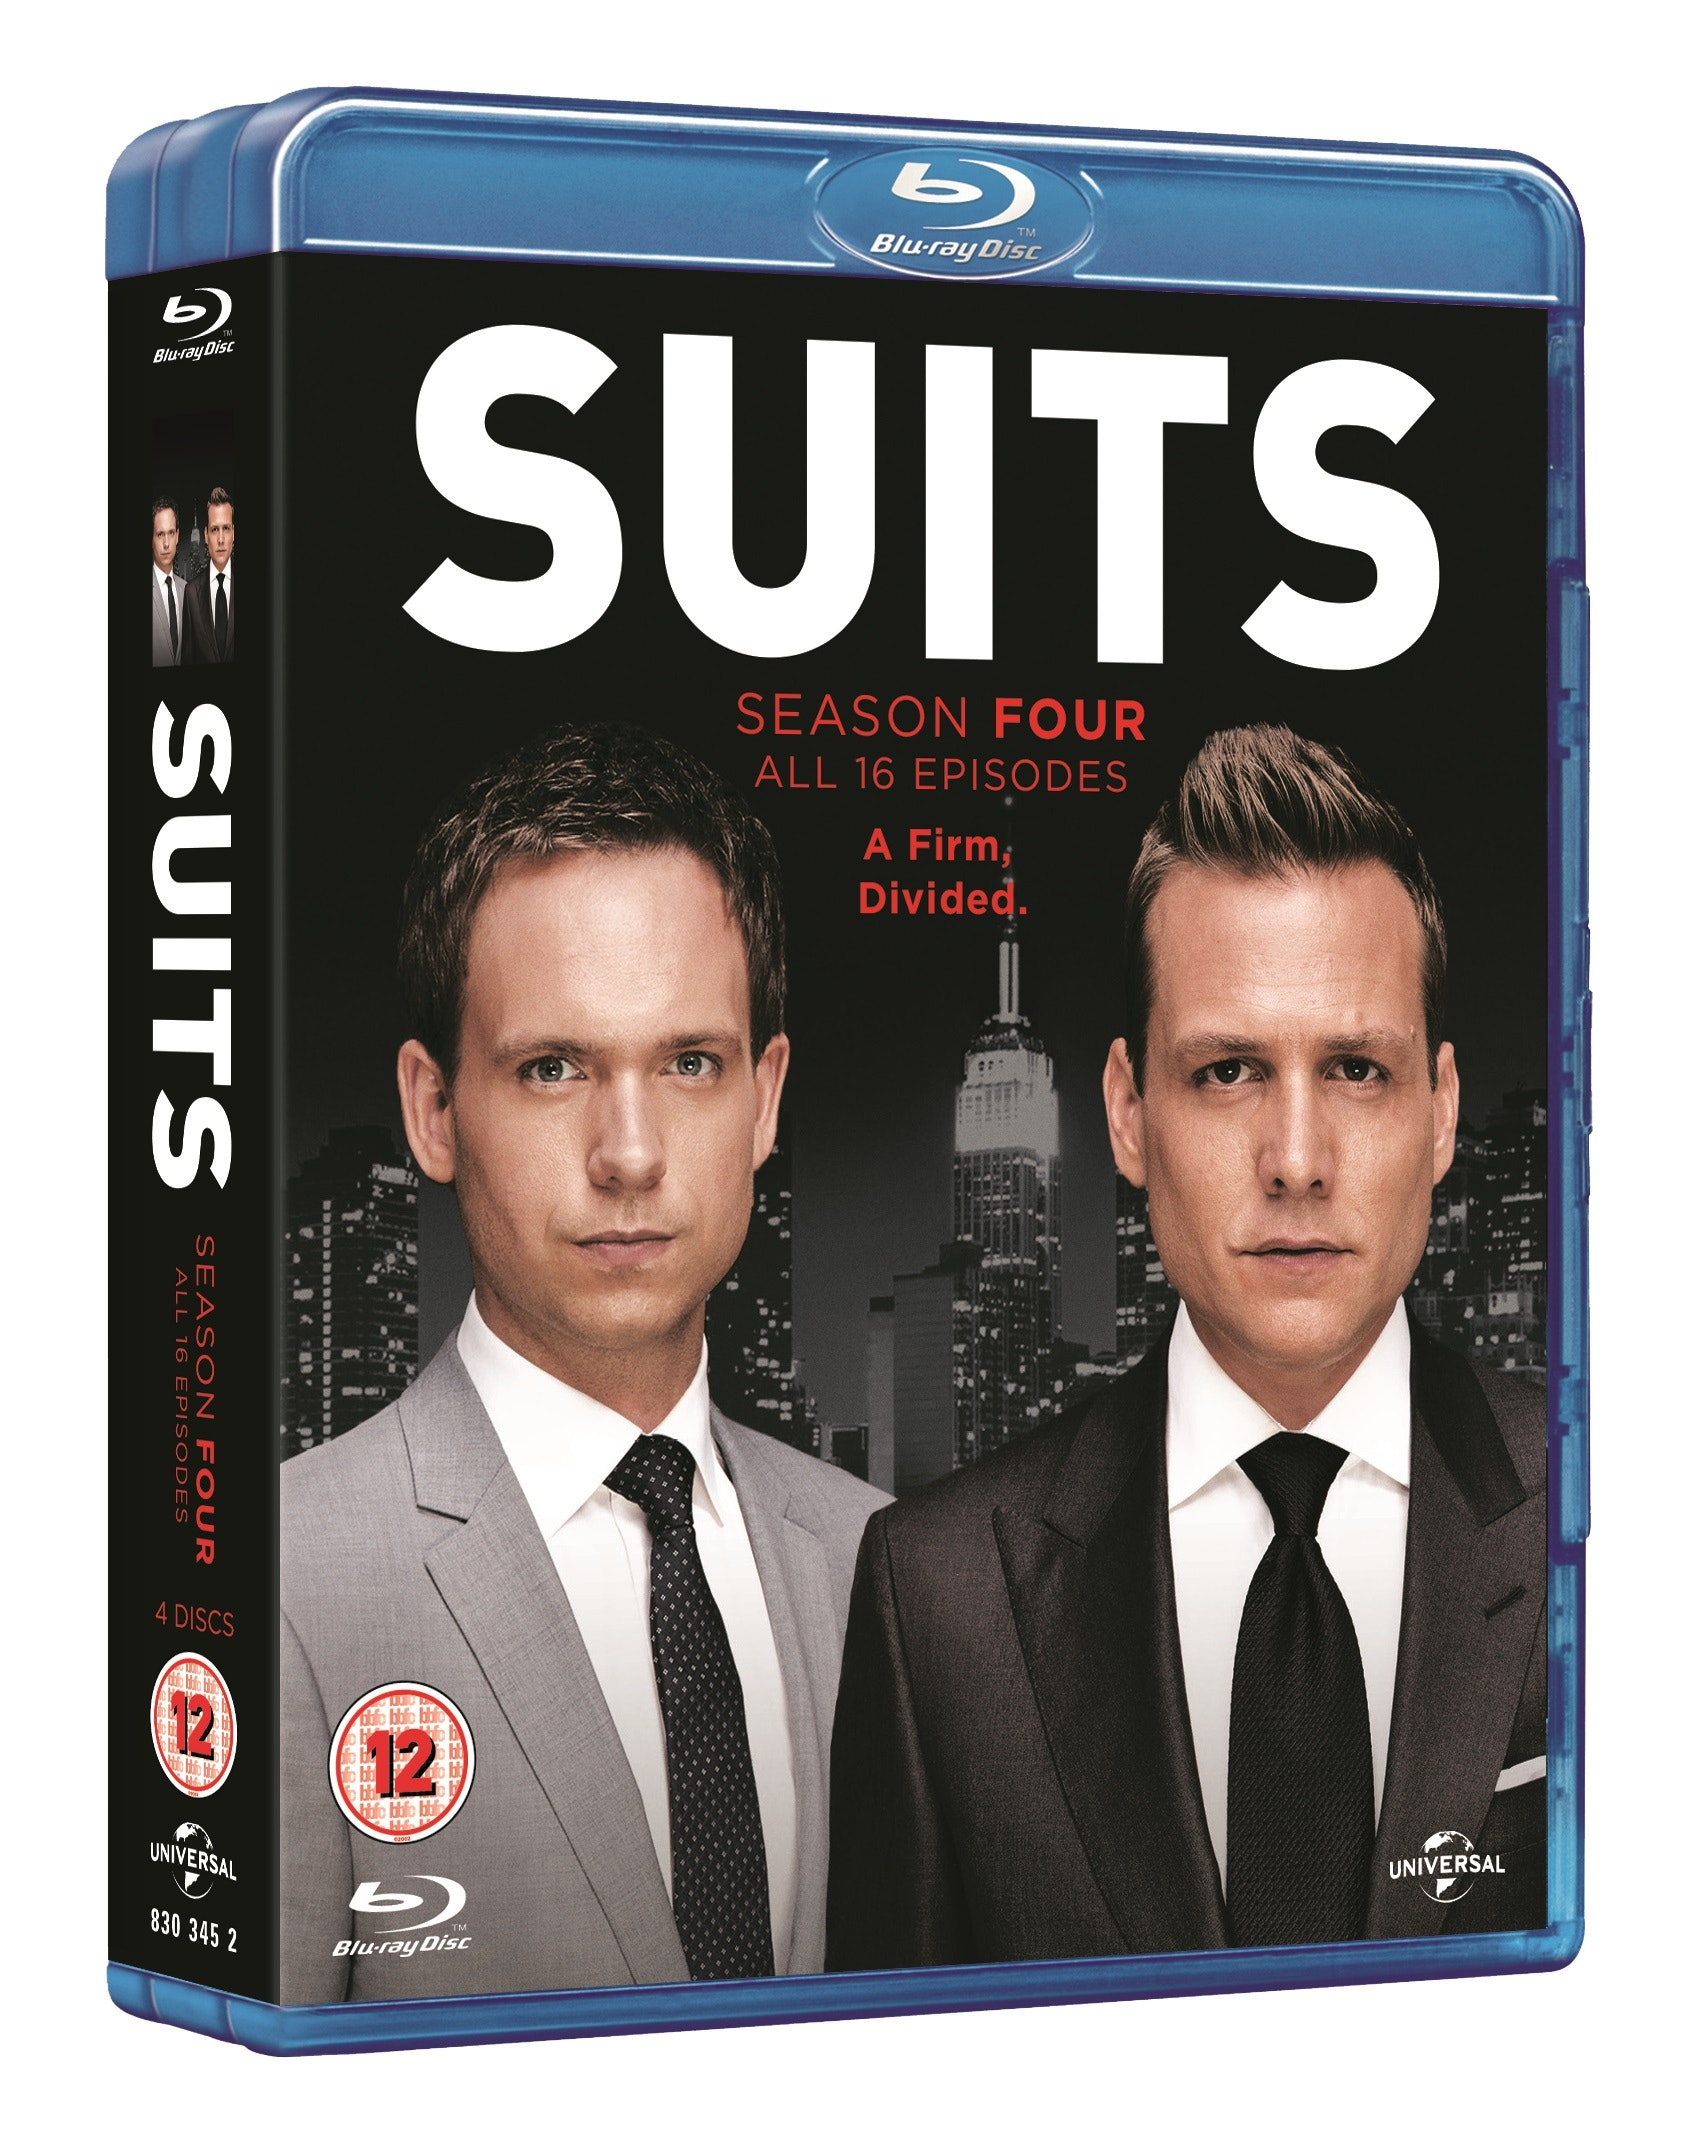 Suits season 4 3d pack shot